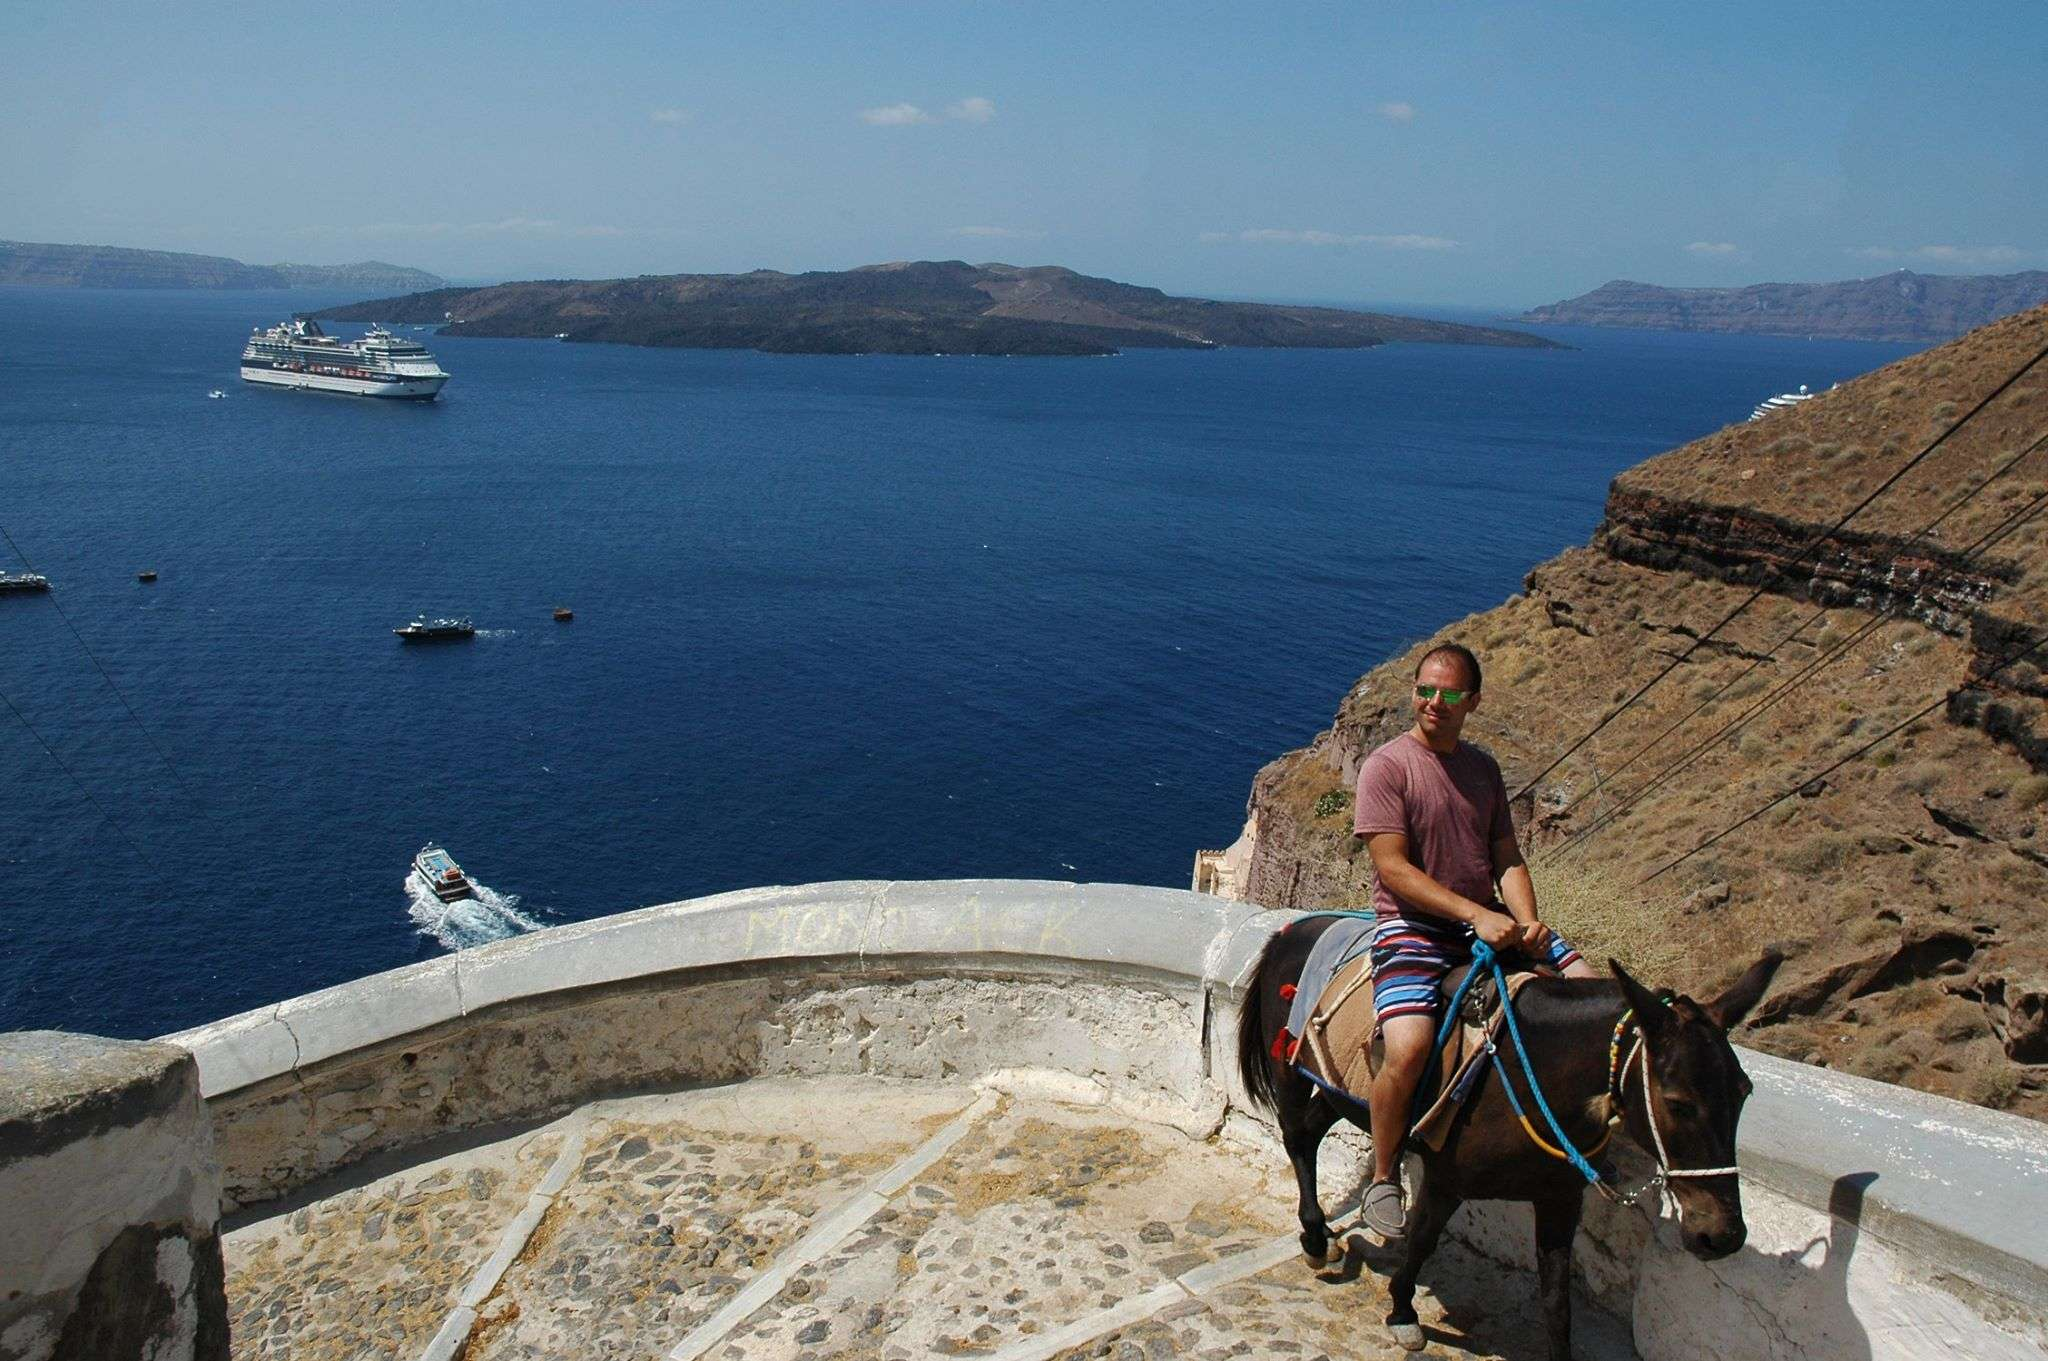 Donkey ride up Fira's caldera with a view of the Aegean Sea